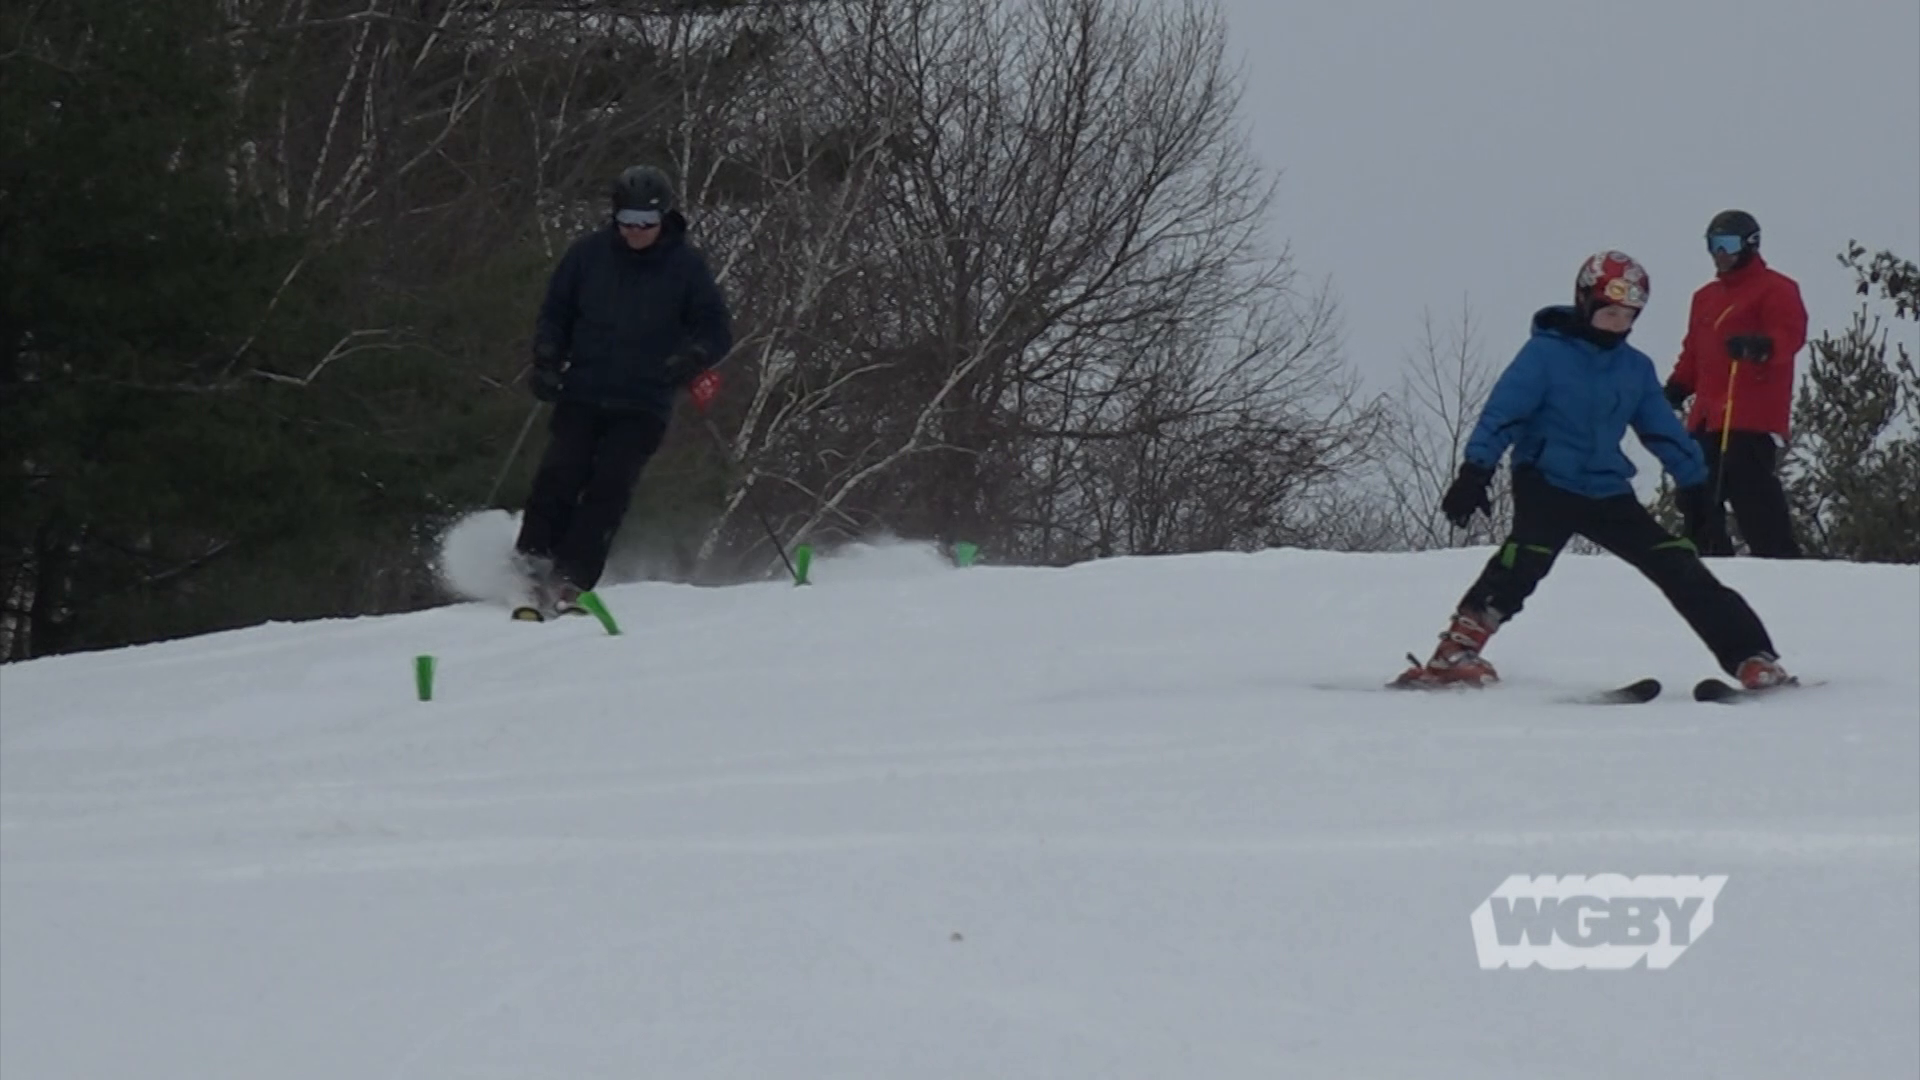 After being purchased by Butternut Ski Area & taking 2018 off for repairs, Blandford Ski Area officially re-opened for the 2019-2020 ski season last month.